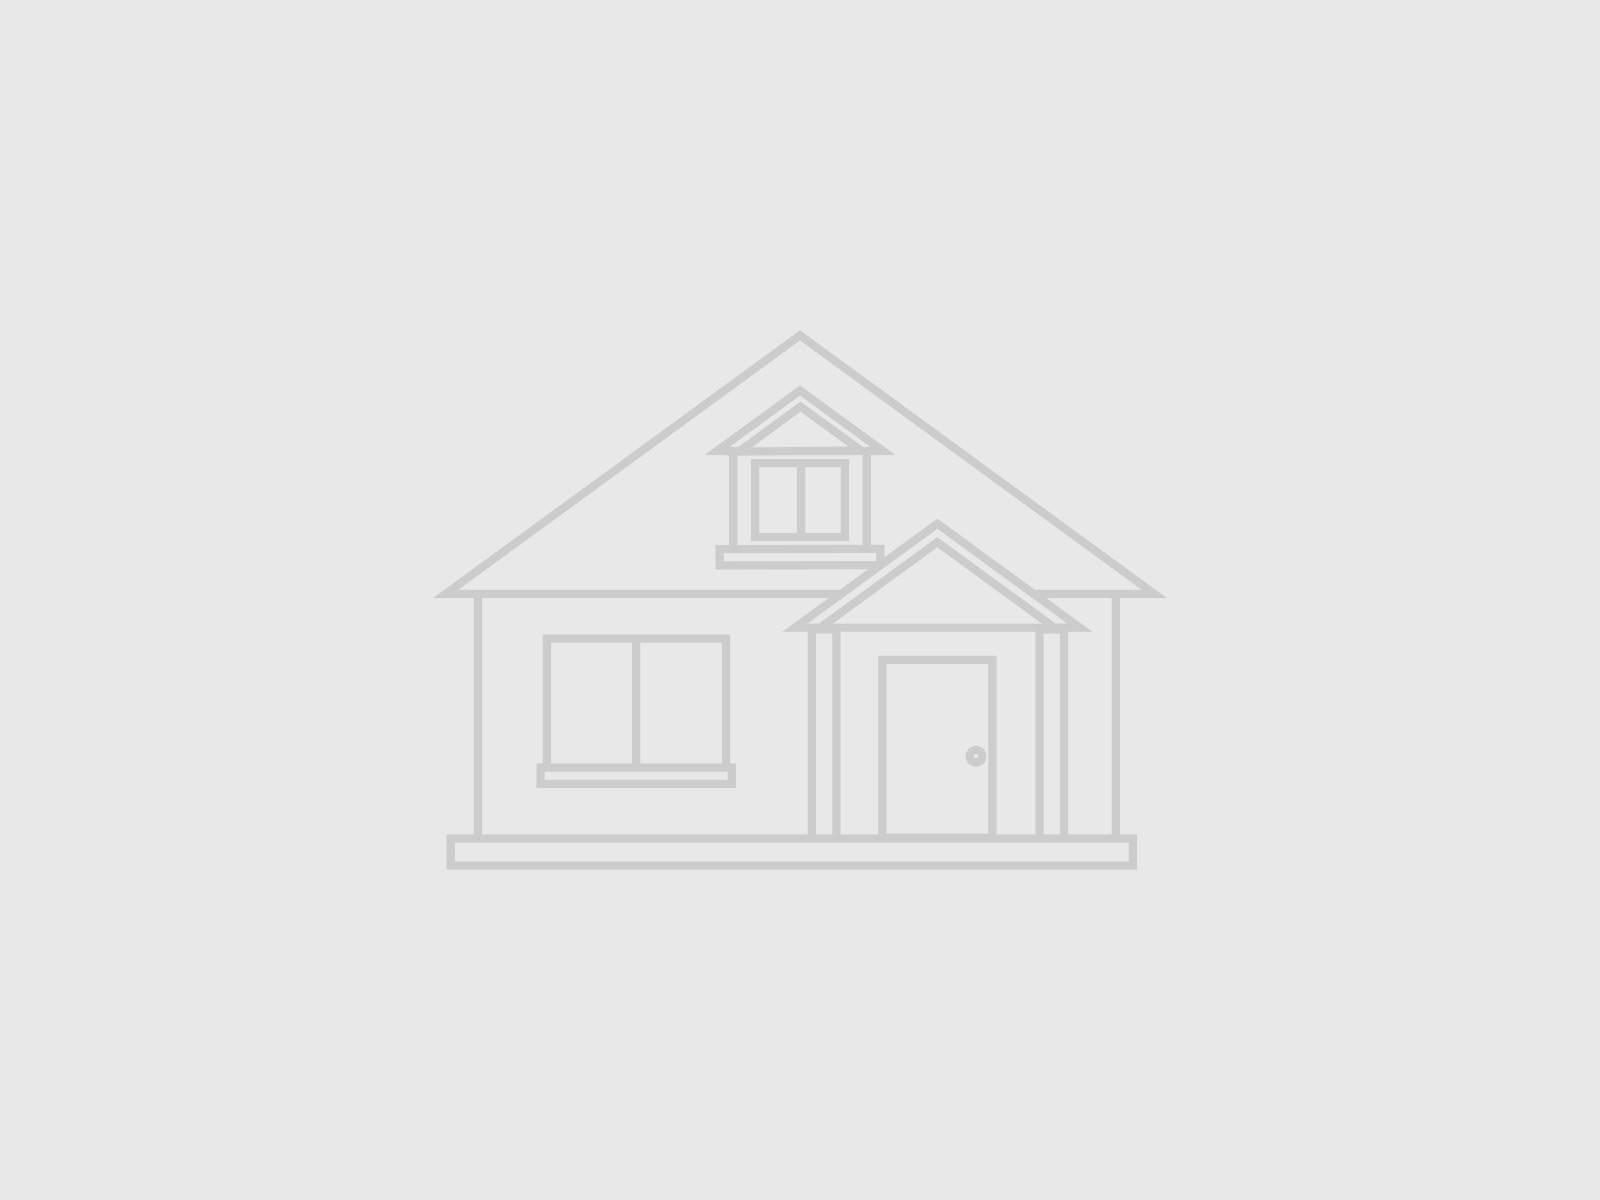 Quadraplex for Sale at 704 E 17th Street Oakland, California 94606 United States